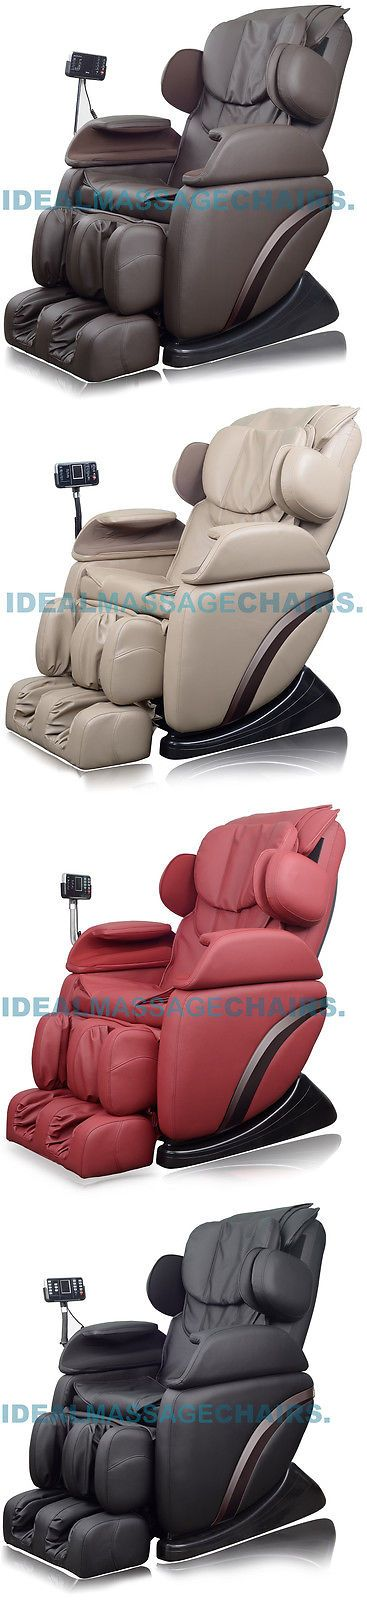 Electric Massage Chairs: Ic-Deal Brand New Shiatsu Recliner Truly Zero Gravity Heated Massage Chair -> BUY IT NOW ONLY: $999.99 on eBay!